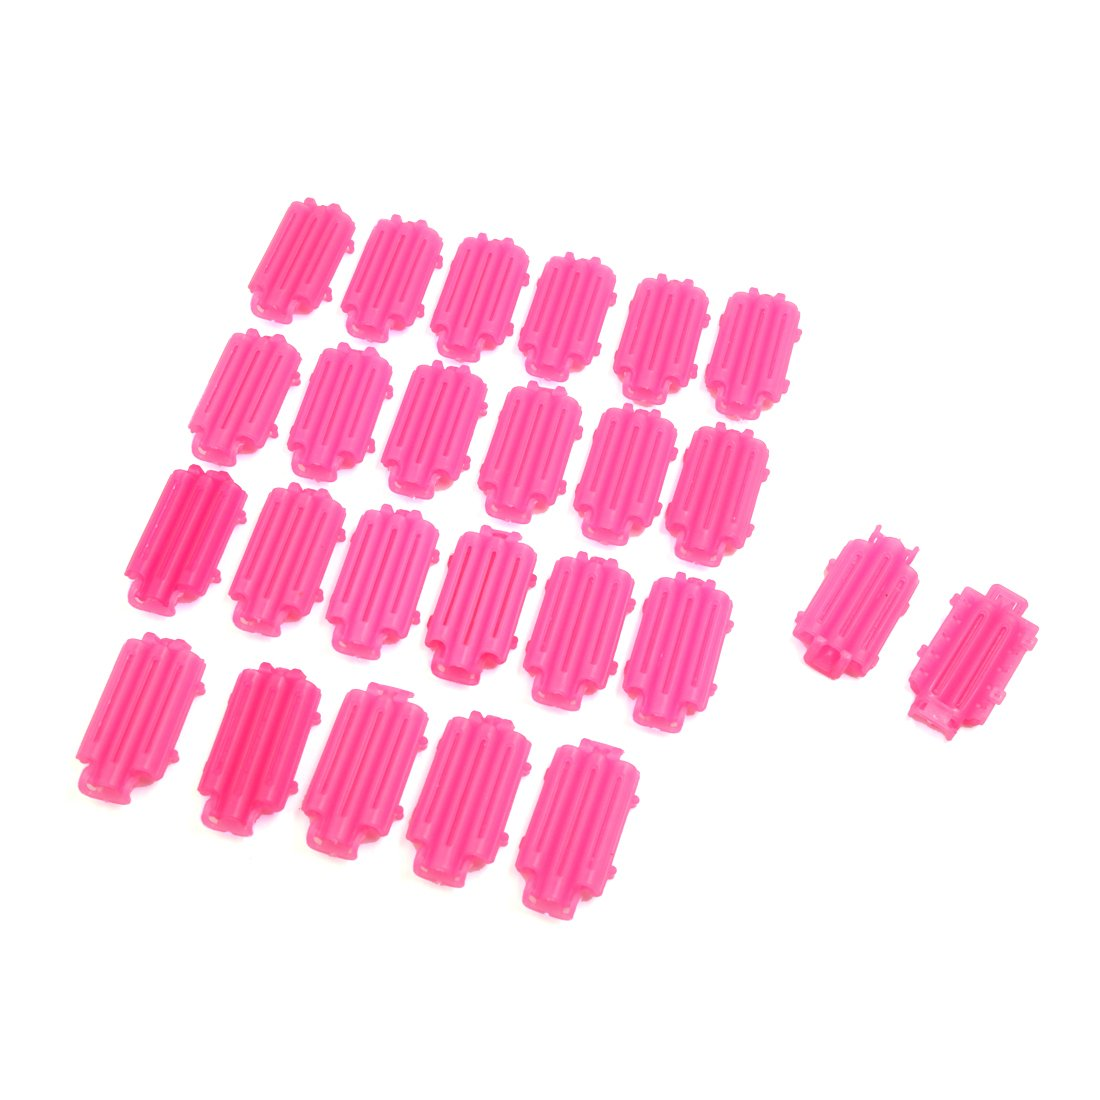 uxcell® 25pcs Pink Plastic Ripple Hair Makeup DIY Lady Salon Styling Roller Curler Clips Tool